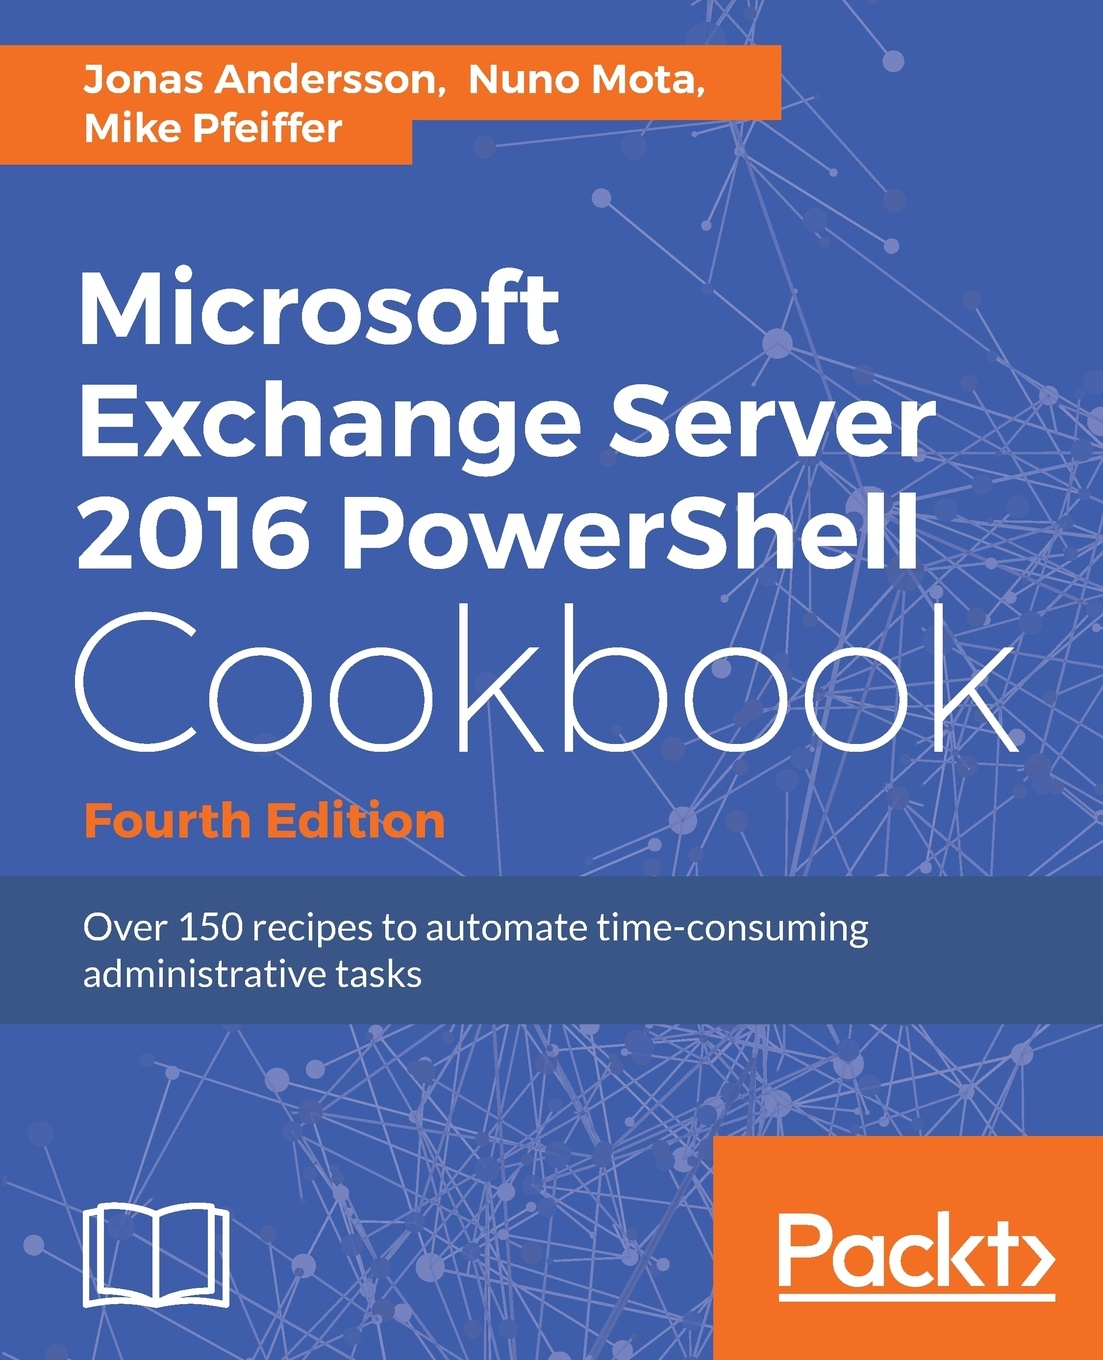 Jonas Andersson, Nuno Mota, Mike Pfeiffer Microsoft Exchange Server 2016 PowerShell Cookbook